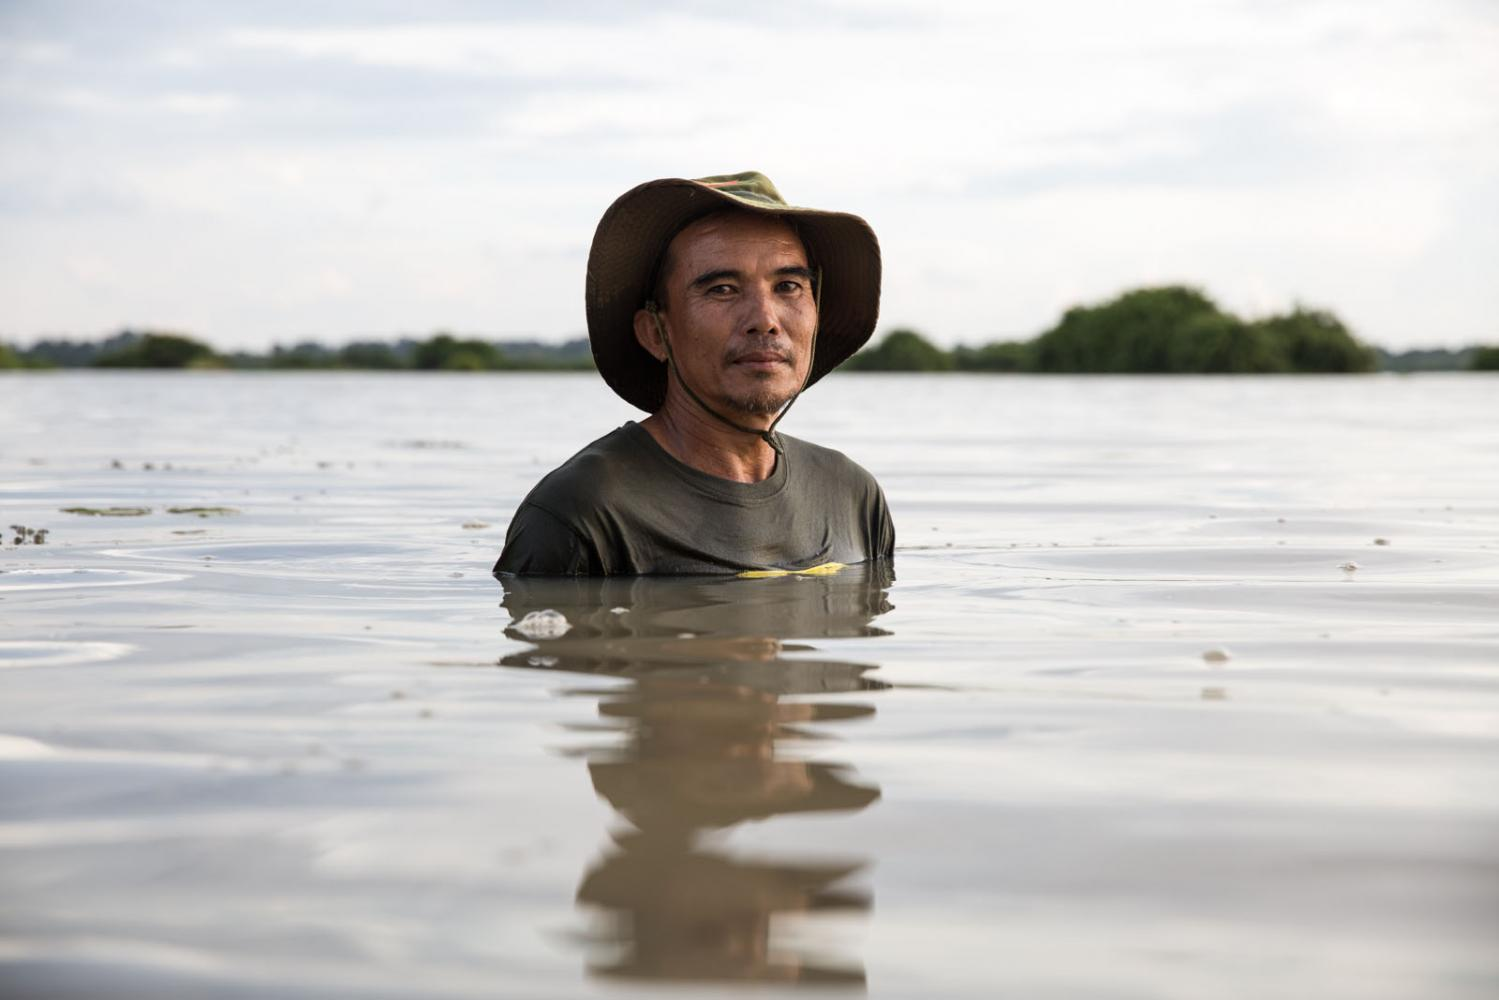 """Apirat Suthawan, 54, is the village chief of Lao Dong village. """"In 29 years the dam has not given us even the smallest bit of water to use!"""" he said. He also saw how the village became split between those for the dam and against and how some of the disagreements still effect relationships today. Rasi Salai, Thailand"""